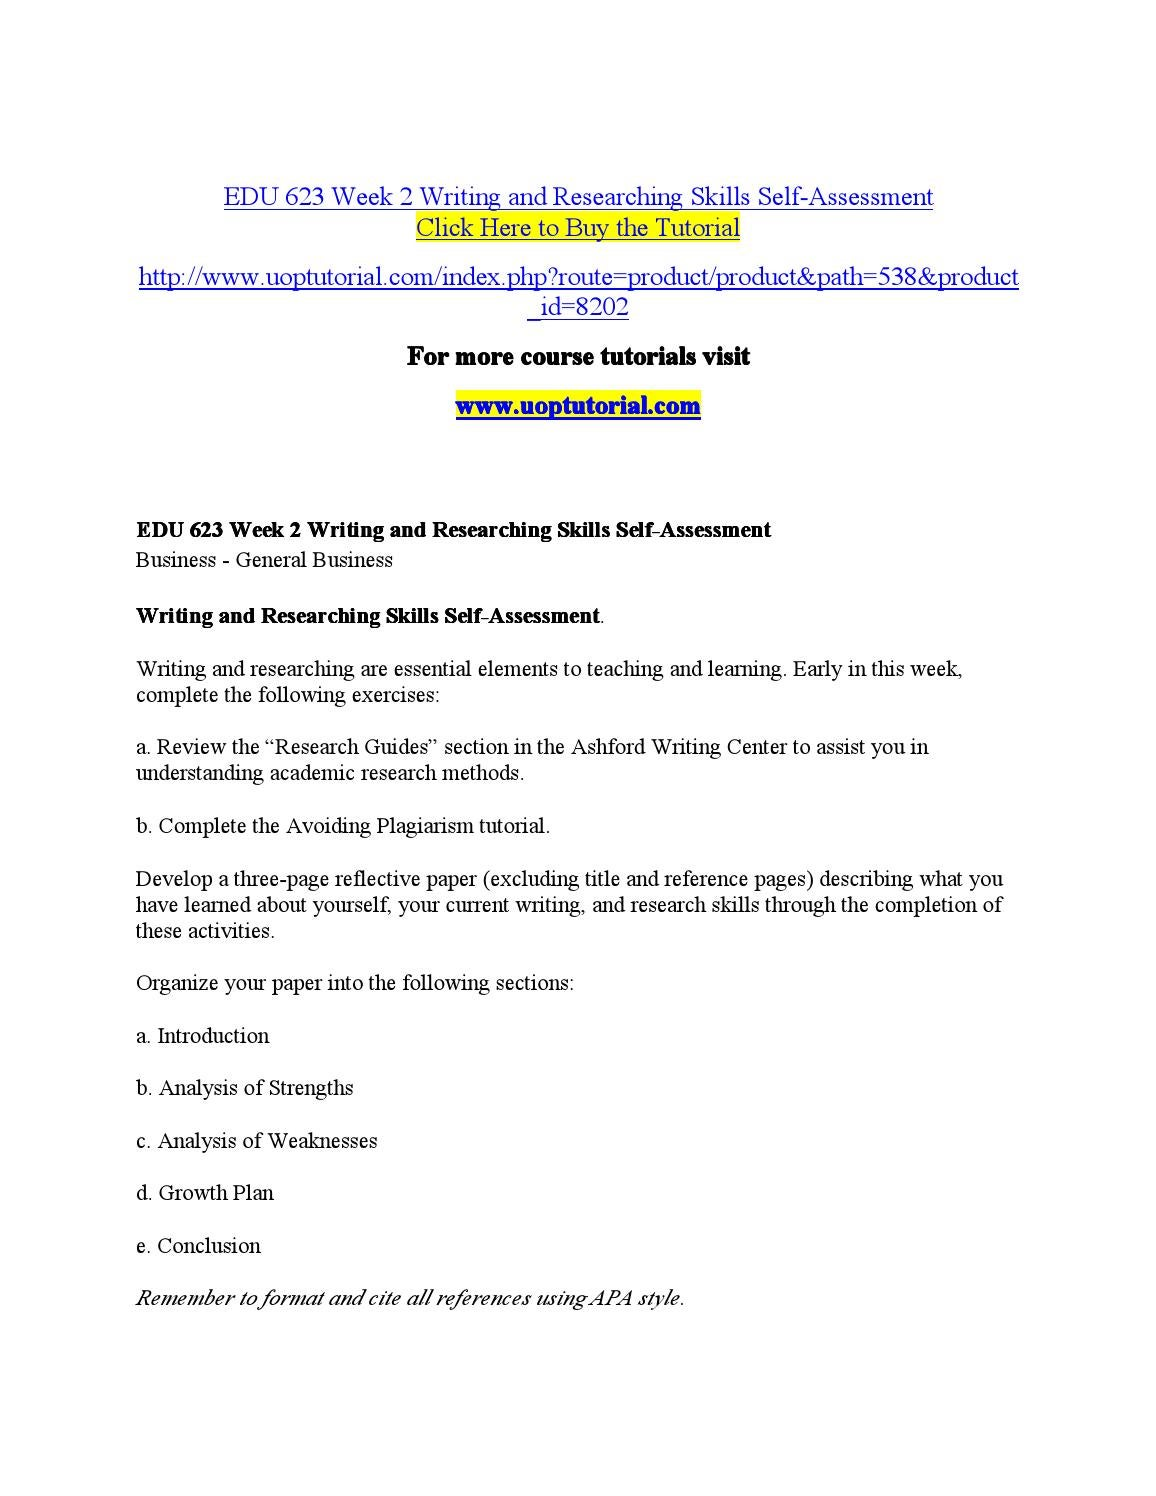 Security Assignment Contractual Rights English Creative Writing